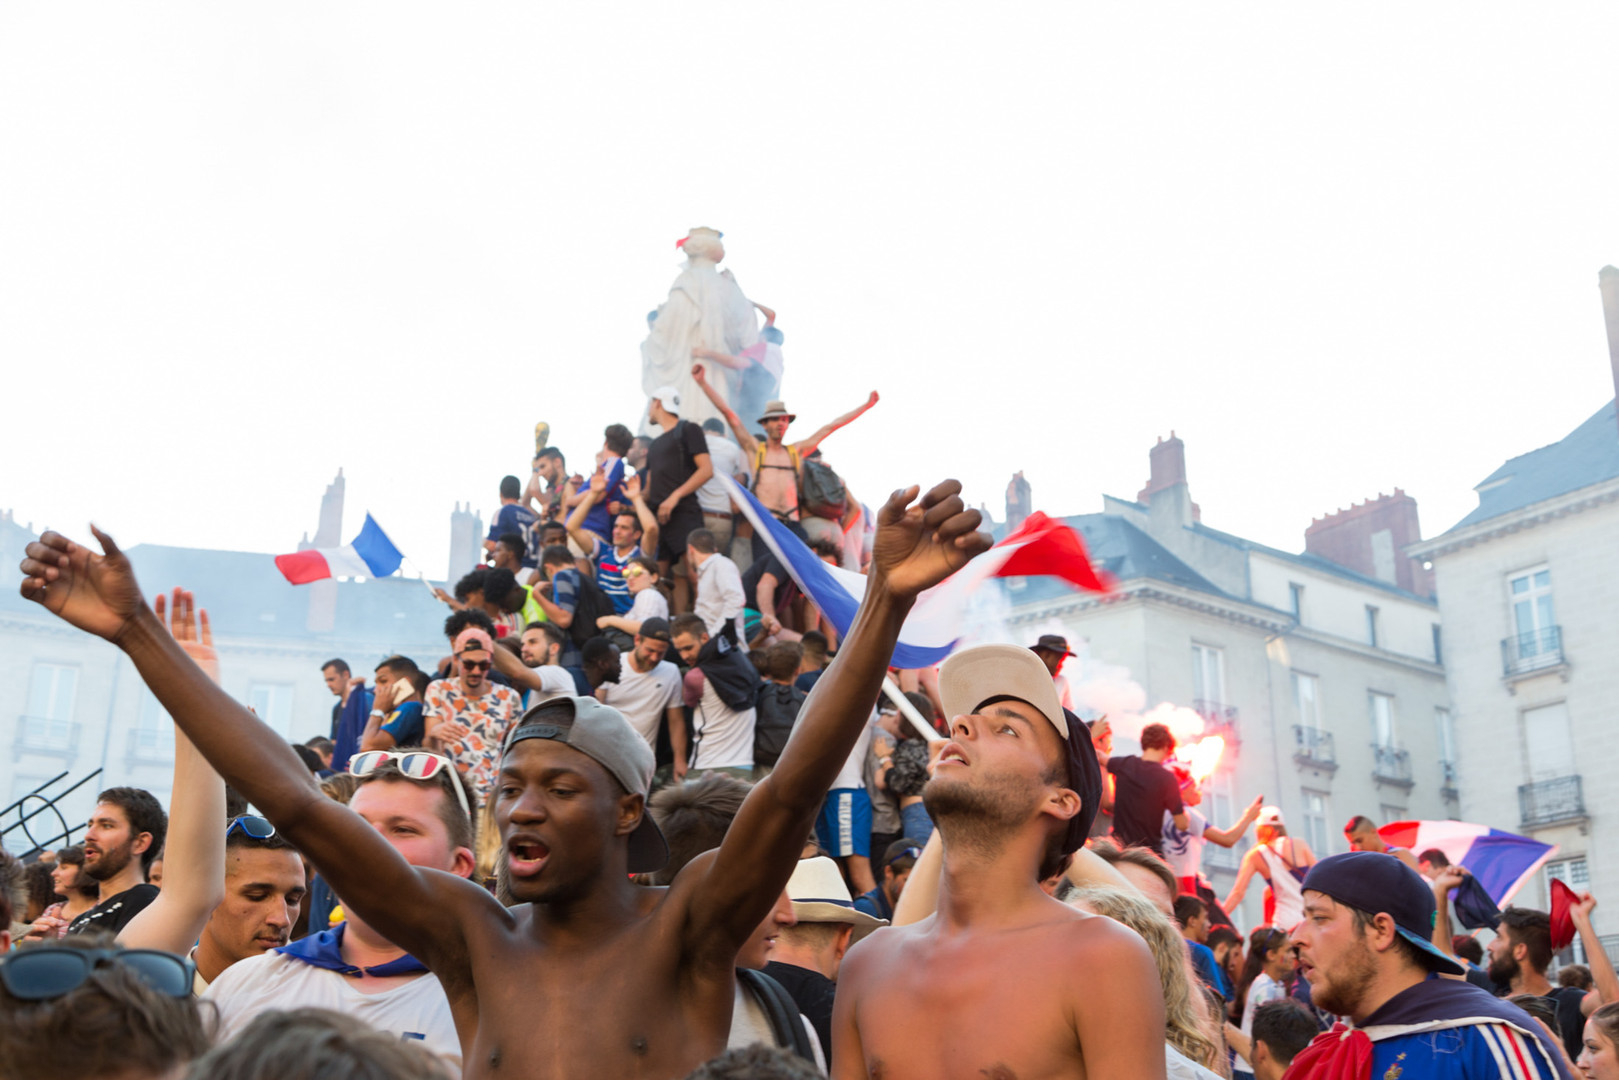 Victoire de la France à la coupe du monde de football